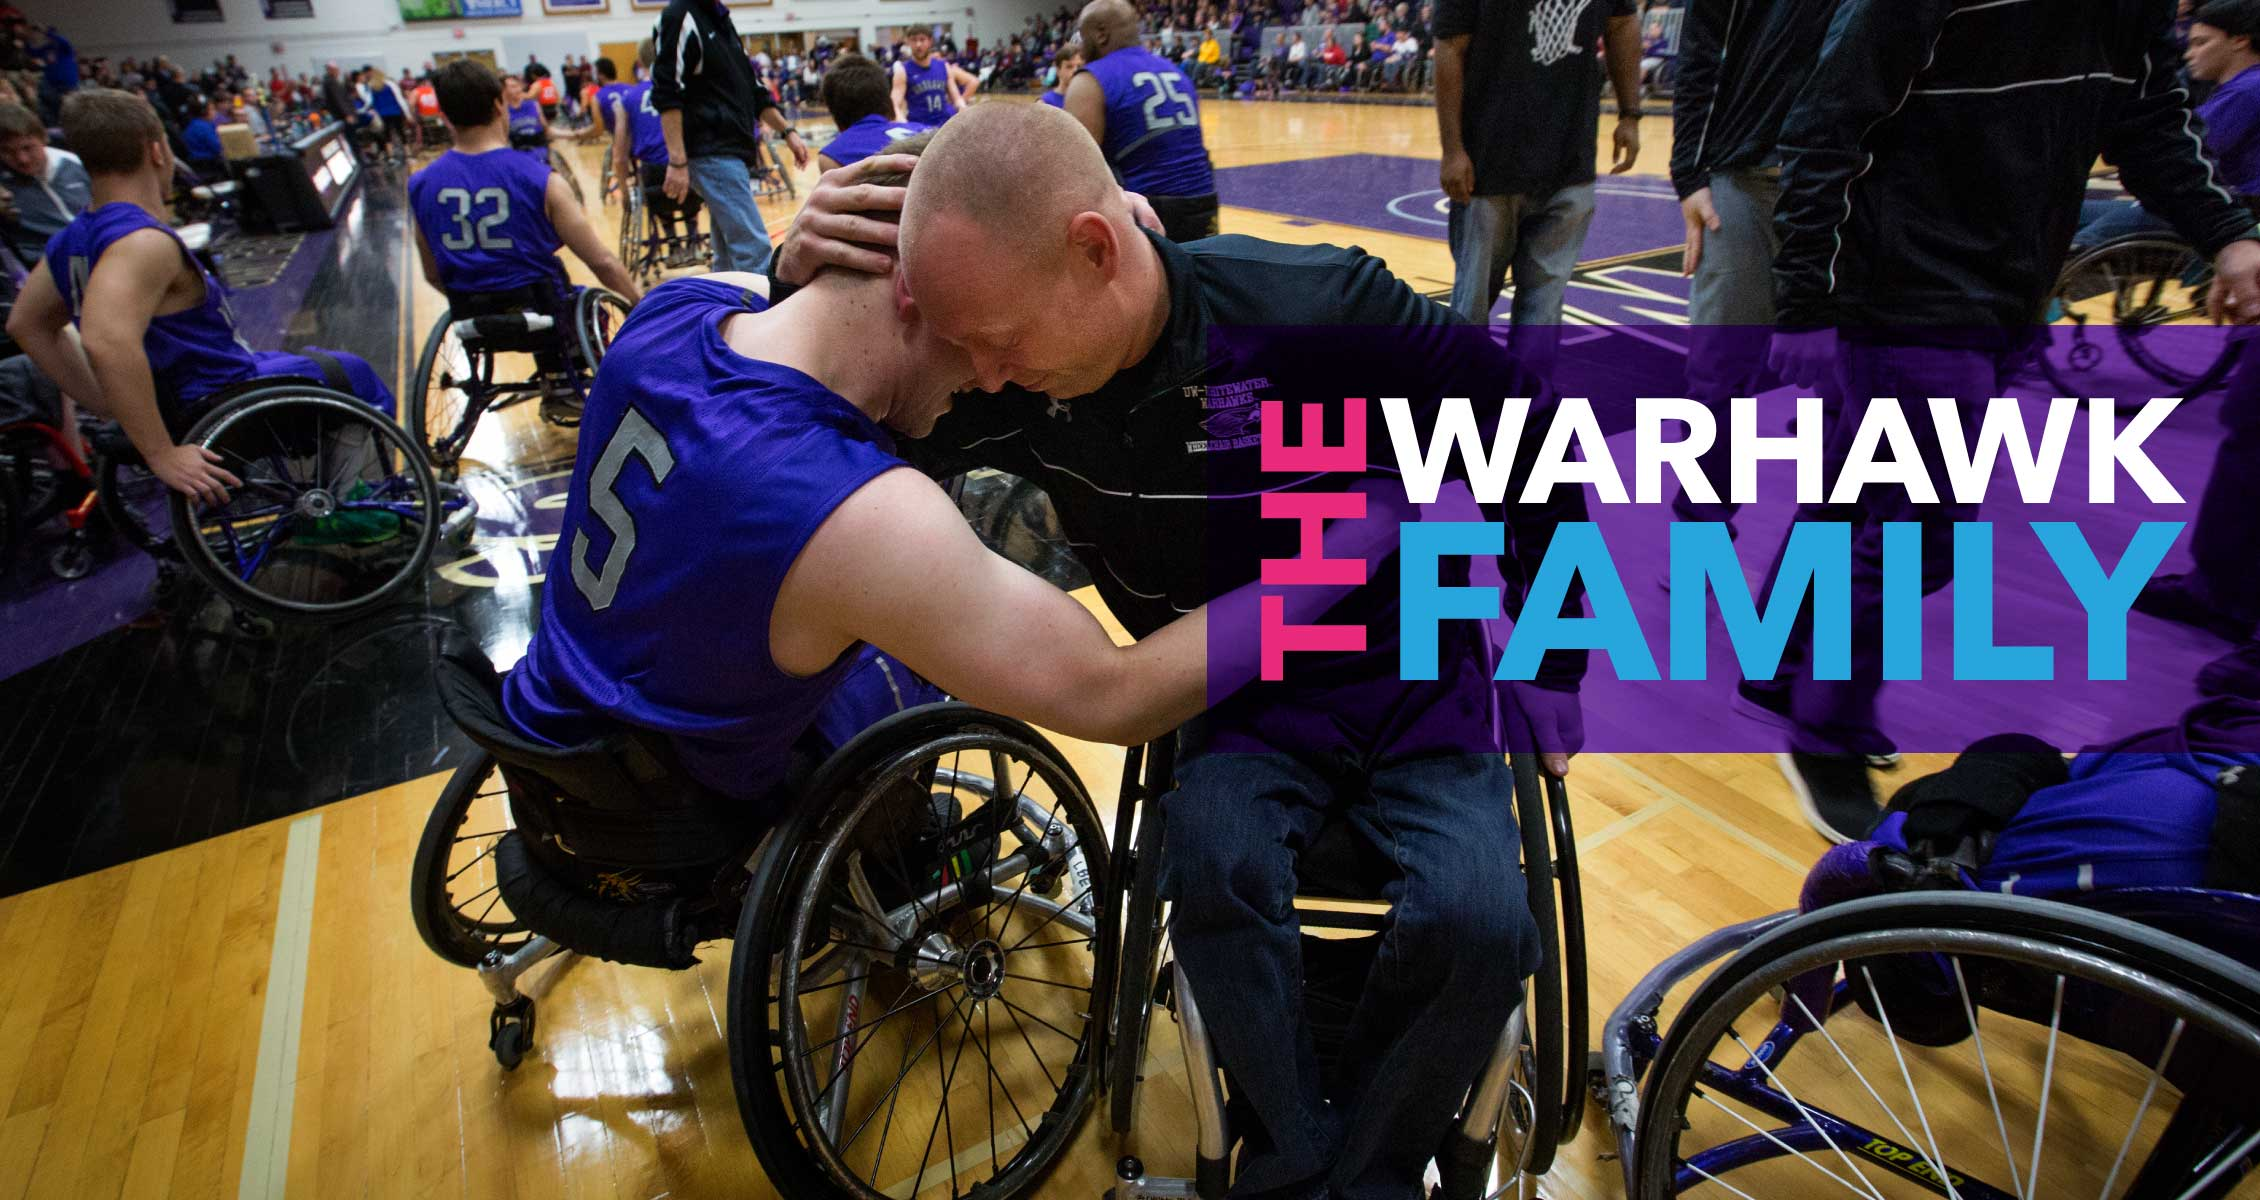 The Warhawk Family: Man in wheelchair embraces student in wheelchair on basketball court